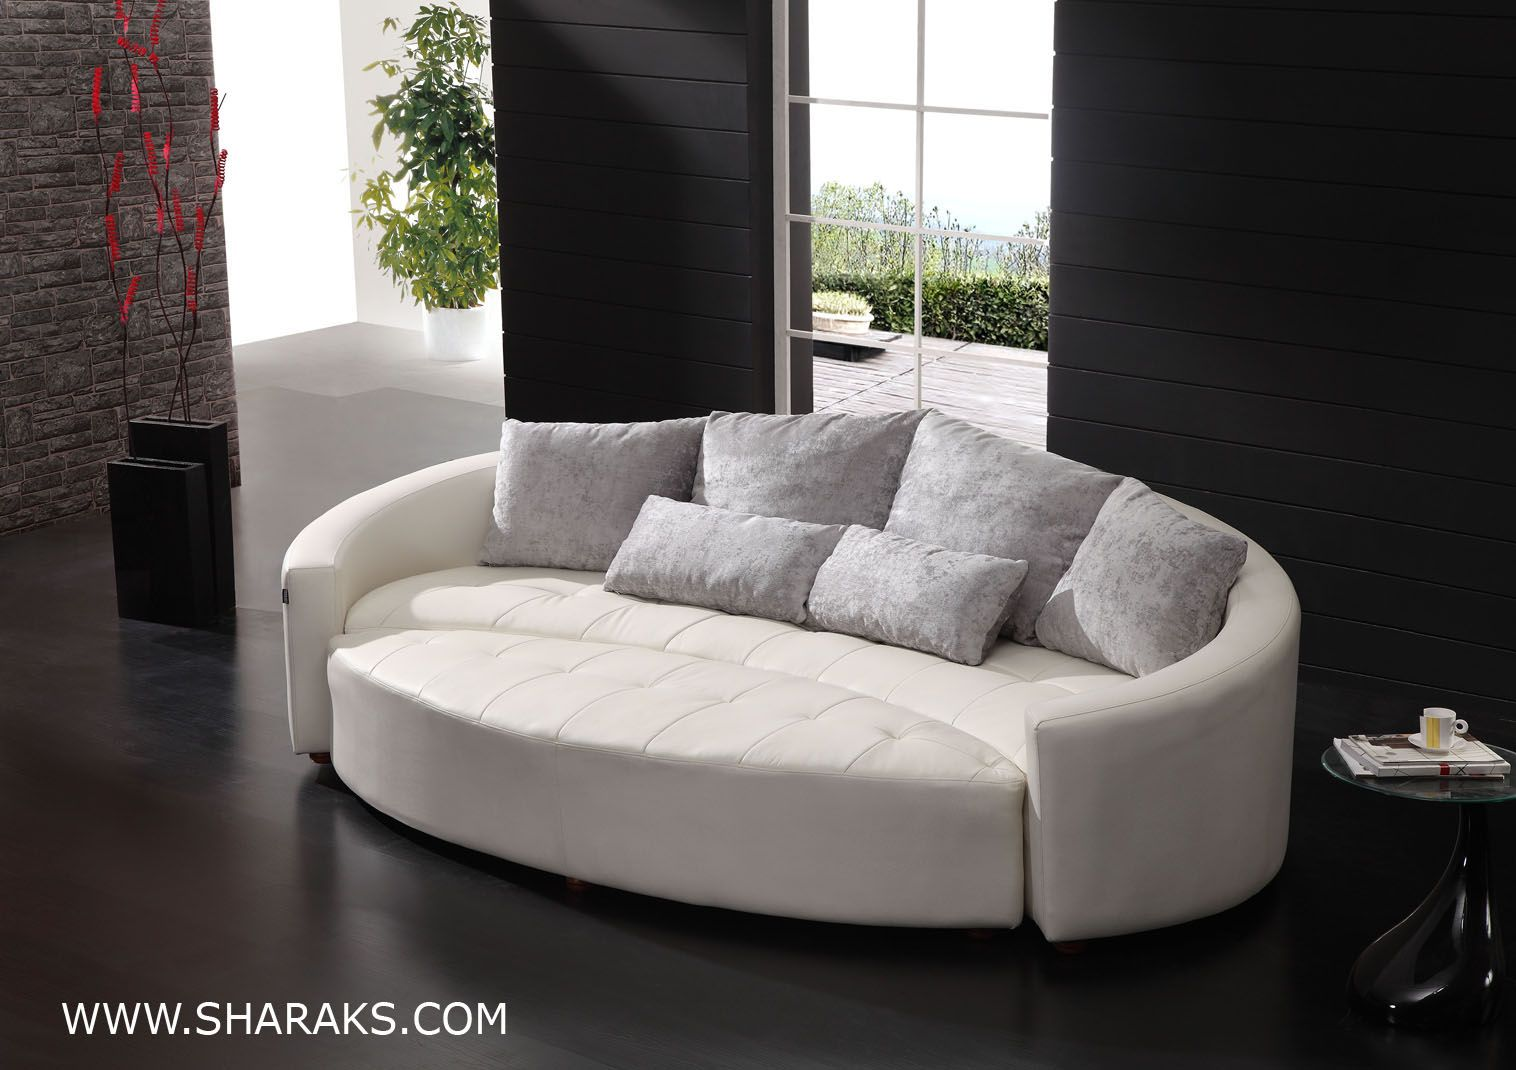 Luxurious white round leather couch has similar colored cushions adorable elegant round leather couch design inspirations furniture